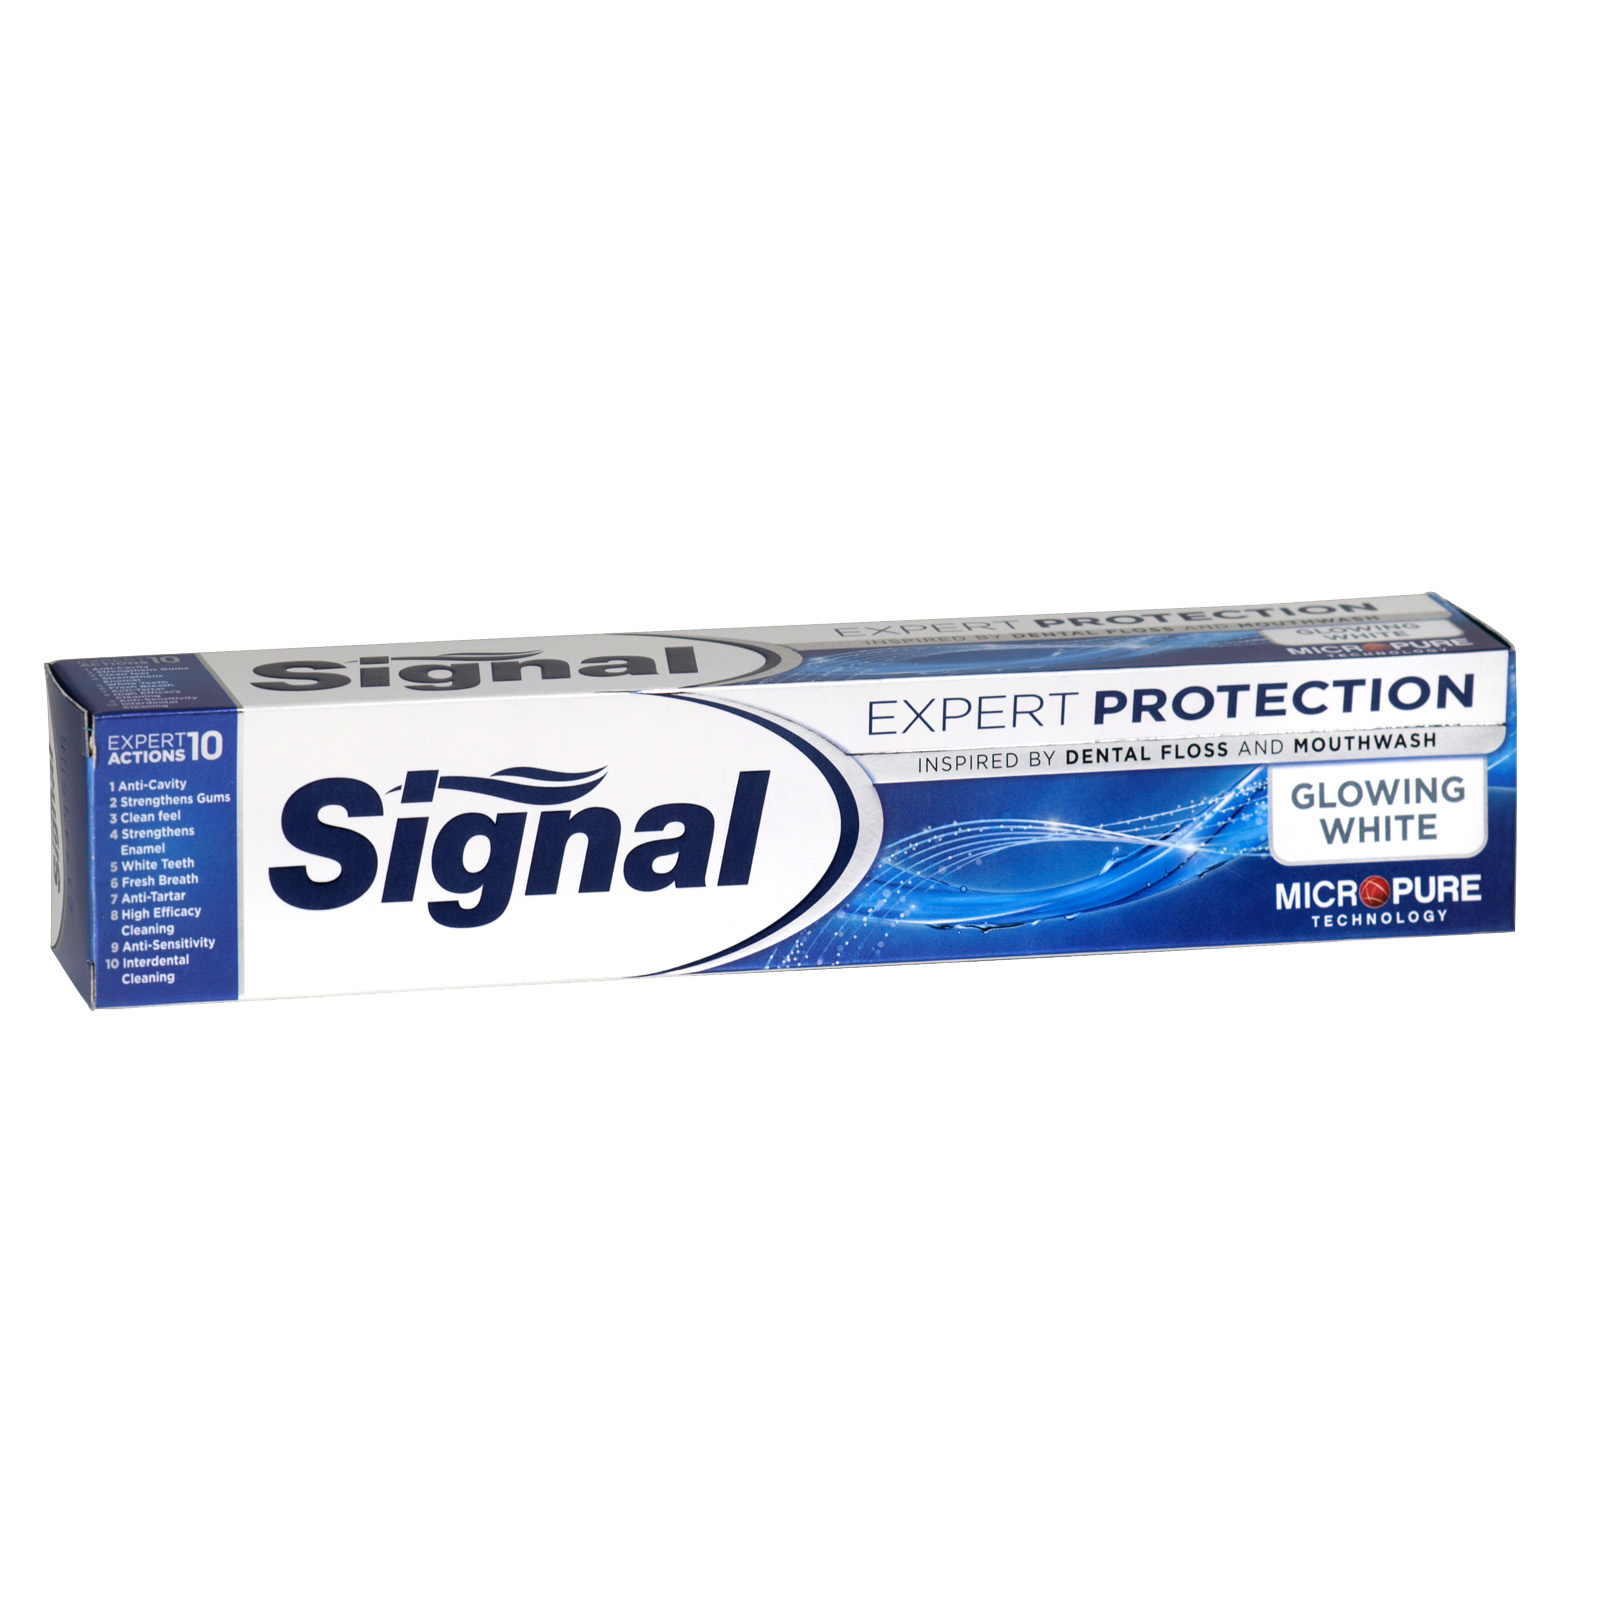 SIGNAL TOOTHPASTE 75ML EXPERT PROTECTION GLOWING WHITE X24